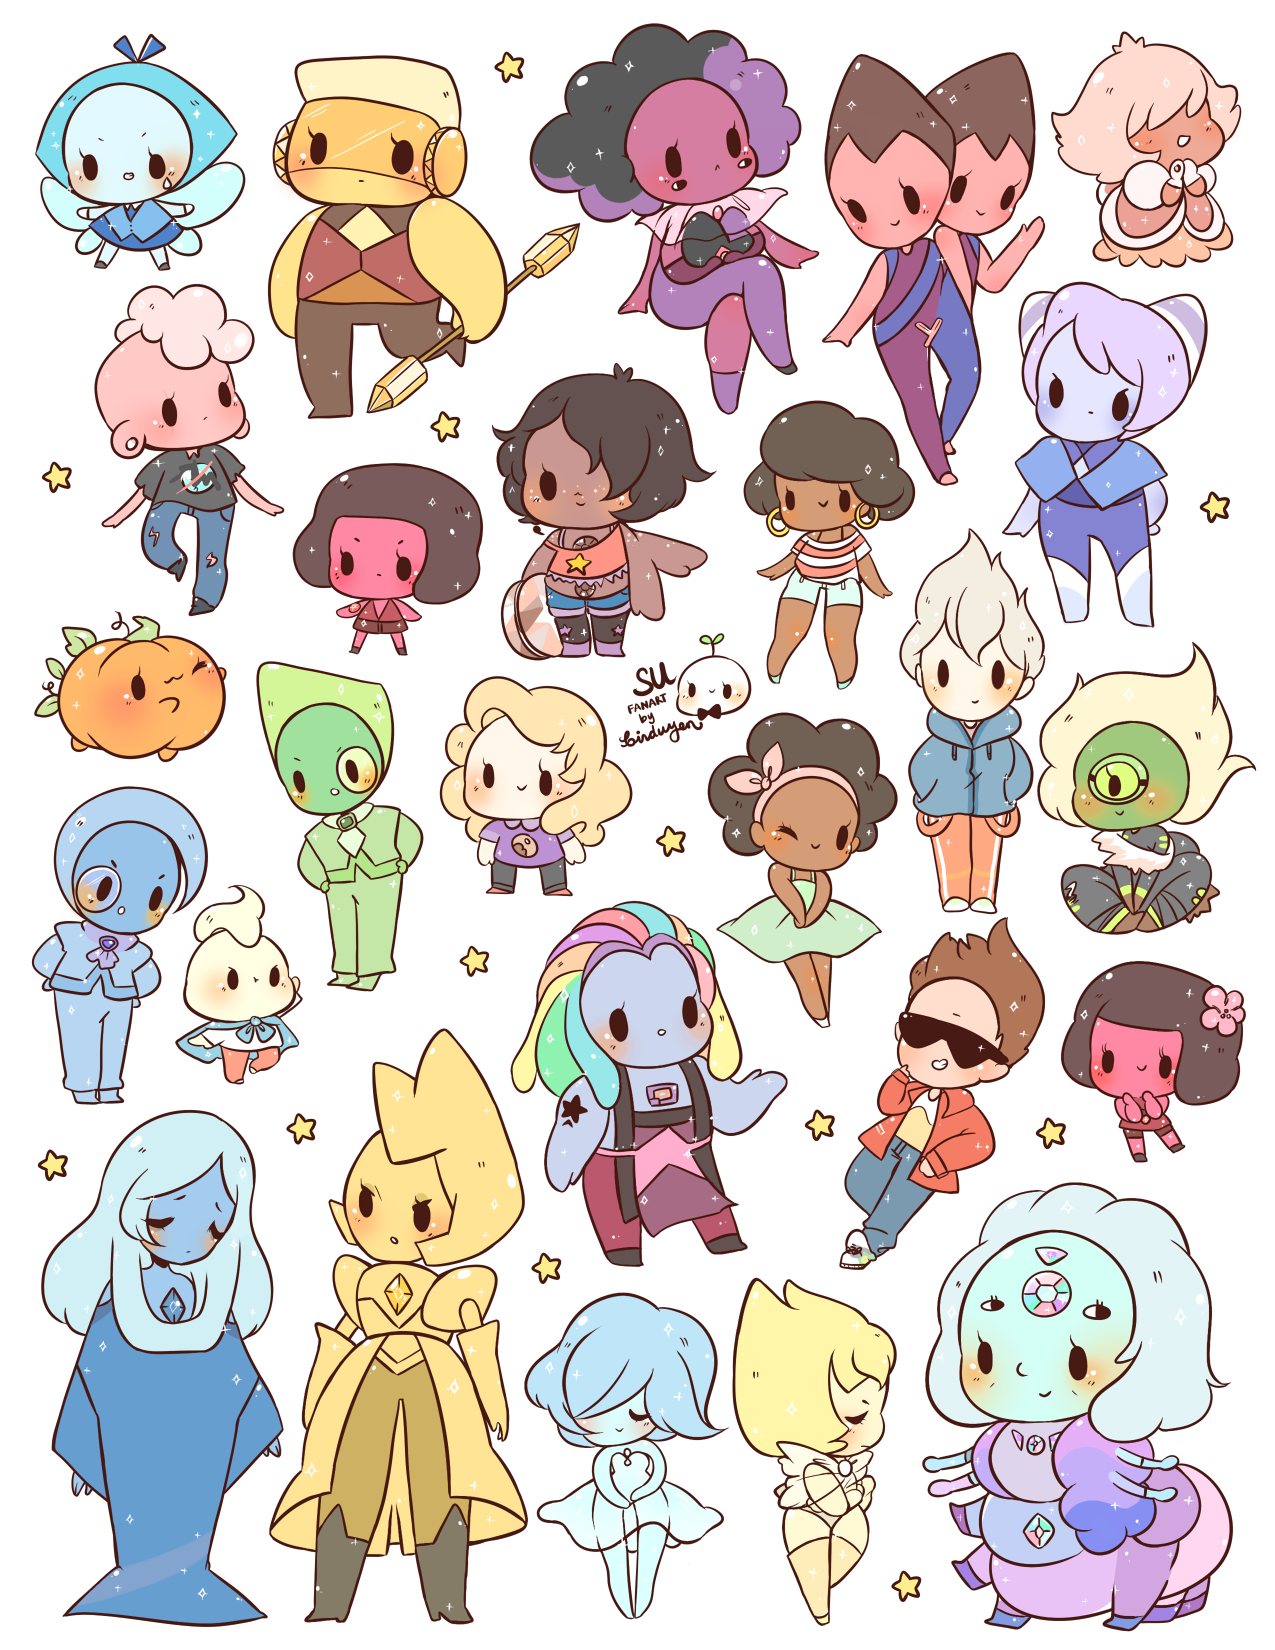 Transparent gem kawaii. New steven universe stickers